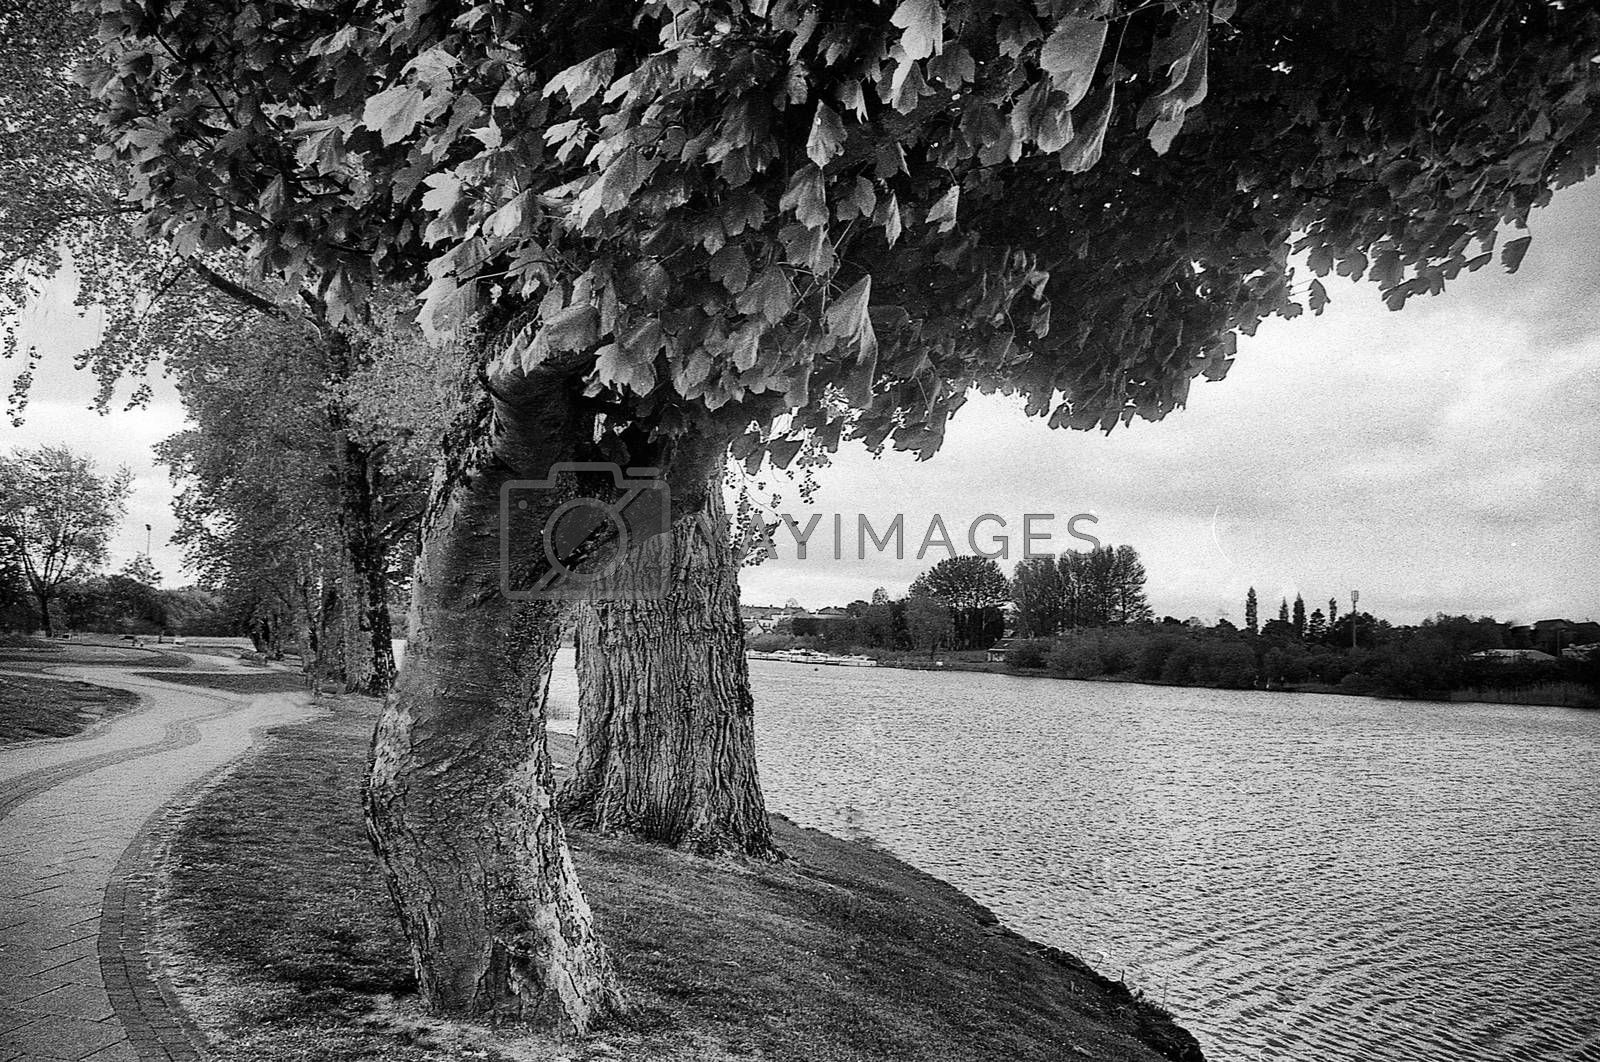 some trees and a large quiet river, this black and white photo was taken with a pinhole film camera, which corresponds to the camera characteristic